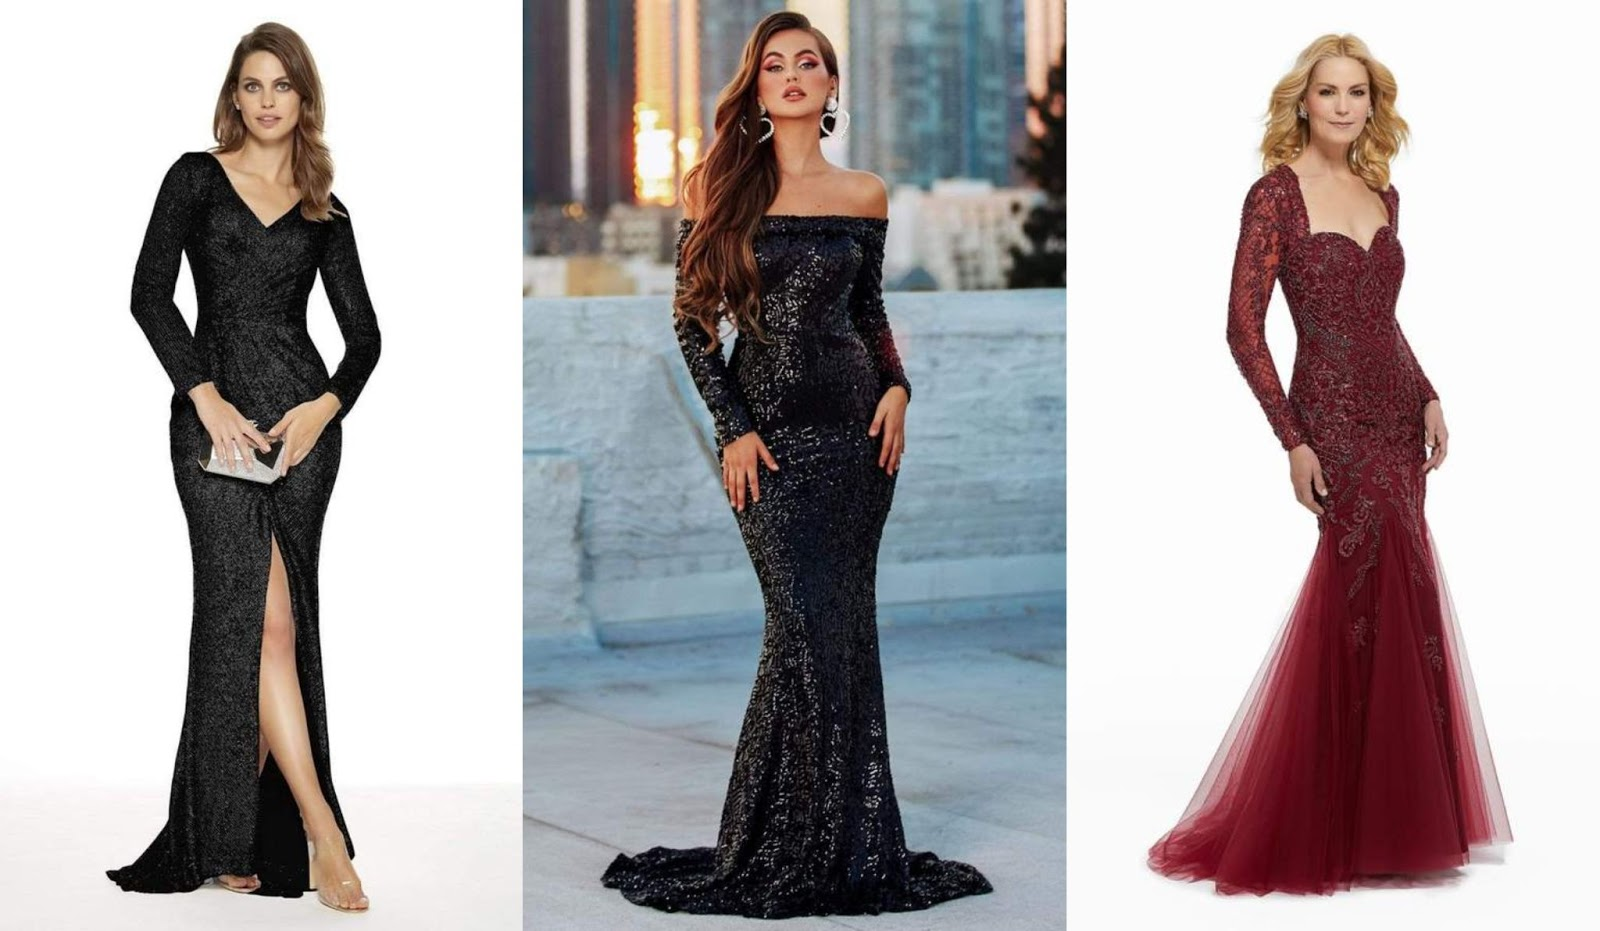 The Magic Of Mermaid Dresses! Have A Glance At History and Hot Trends